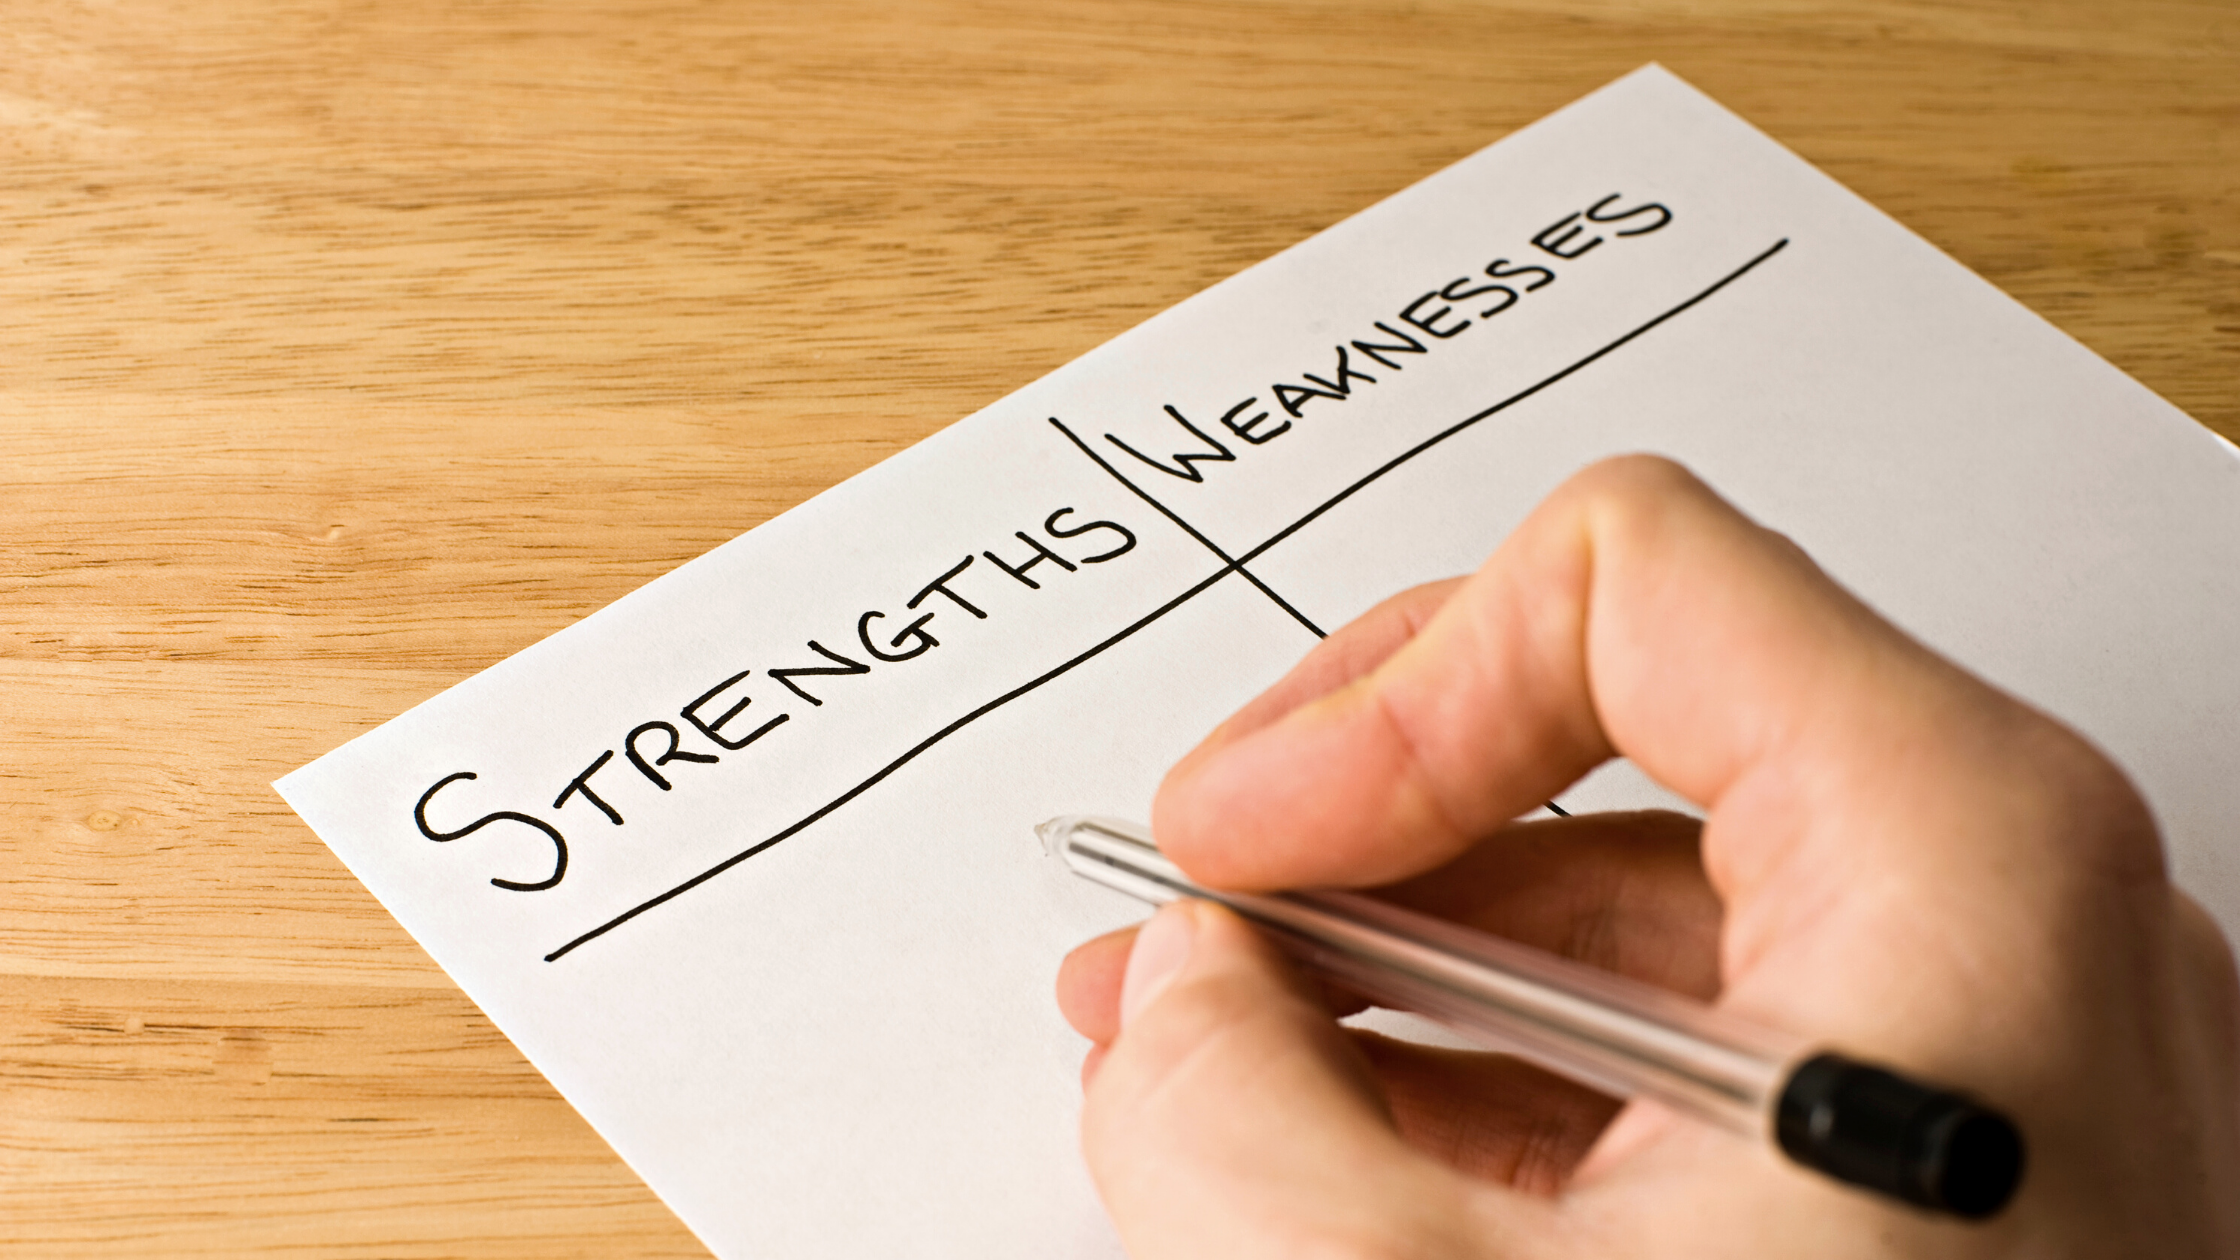 Human Resources Strengths and Weaknesses | HR Blog Southwestern HR Consulting